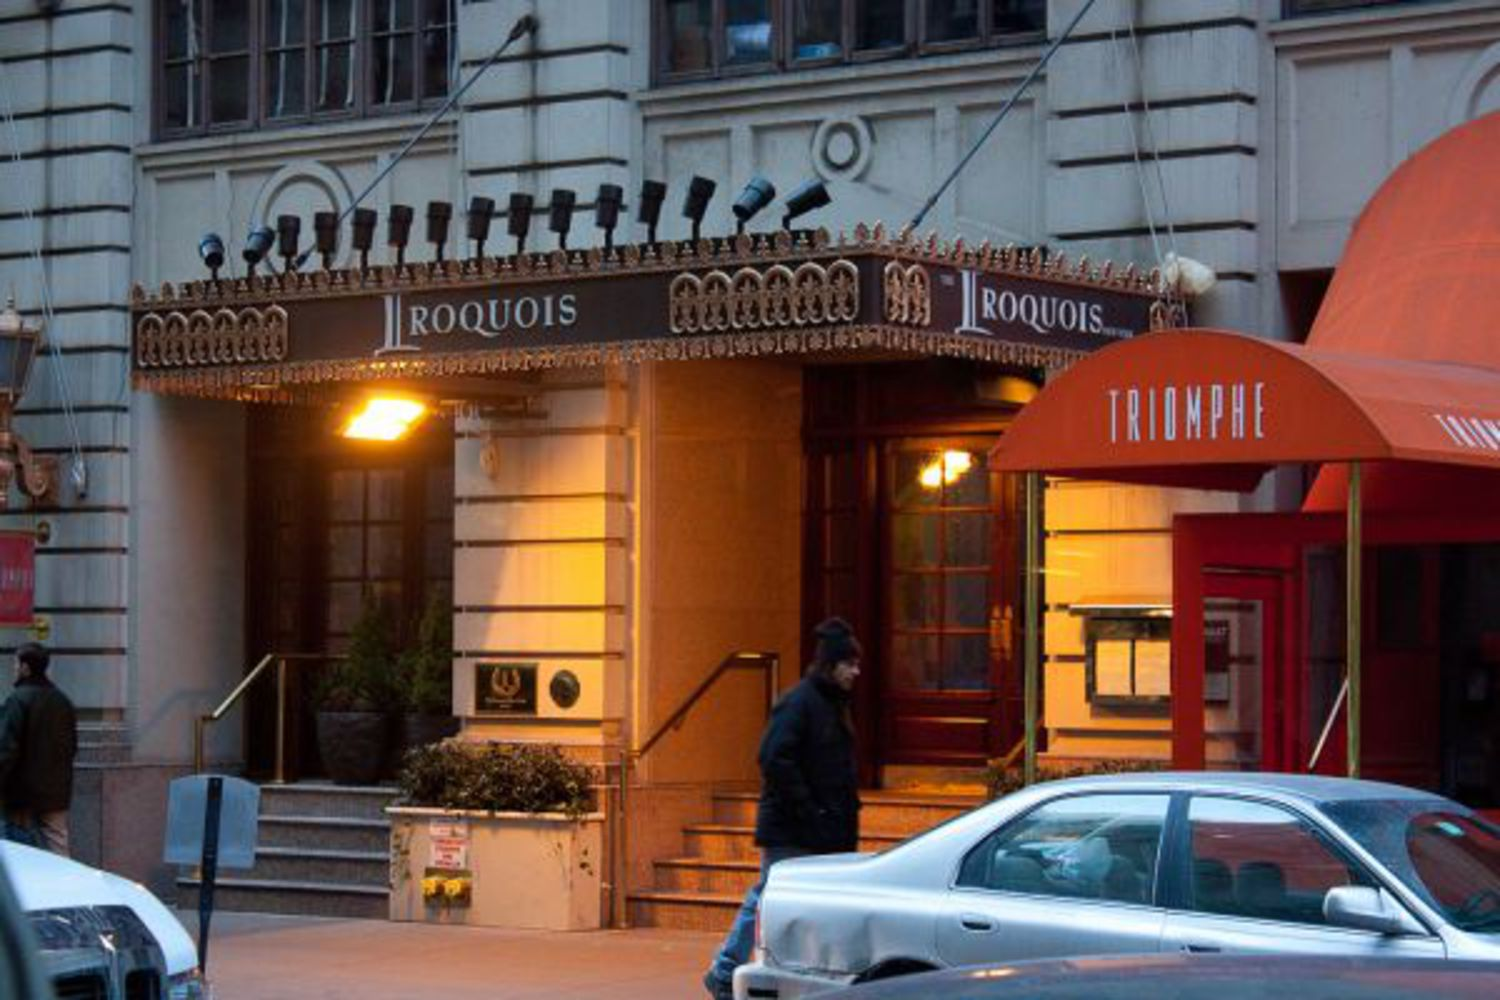 "Iroquois Hotel: Just down the street from the Algonquin Hotel on West 44th Street, the Iroquois New York Hotel opened in 1900. Although it does not have the same reputation for being an artistic and literary mecca as the Algonquin, it has had its share of celebrity visits. James Dean lived there for a time in the 1950s, and Jonny Depp was said to have stayed there at one point. Today its owners advertise the hotel as a ""luxurious"" midtown refuge."